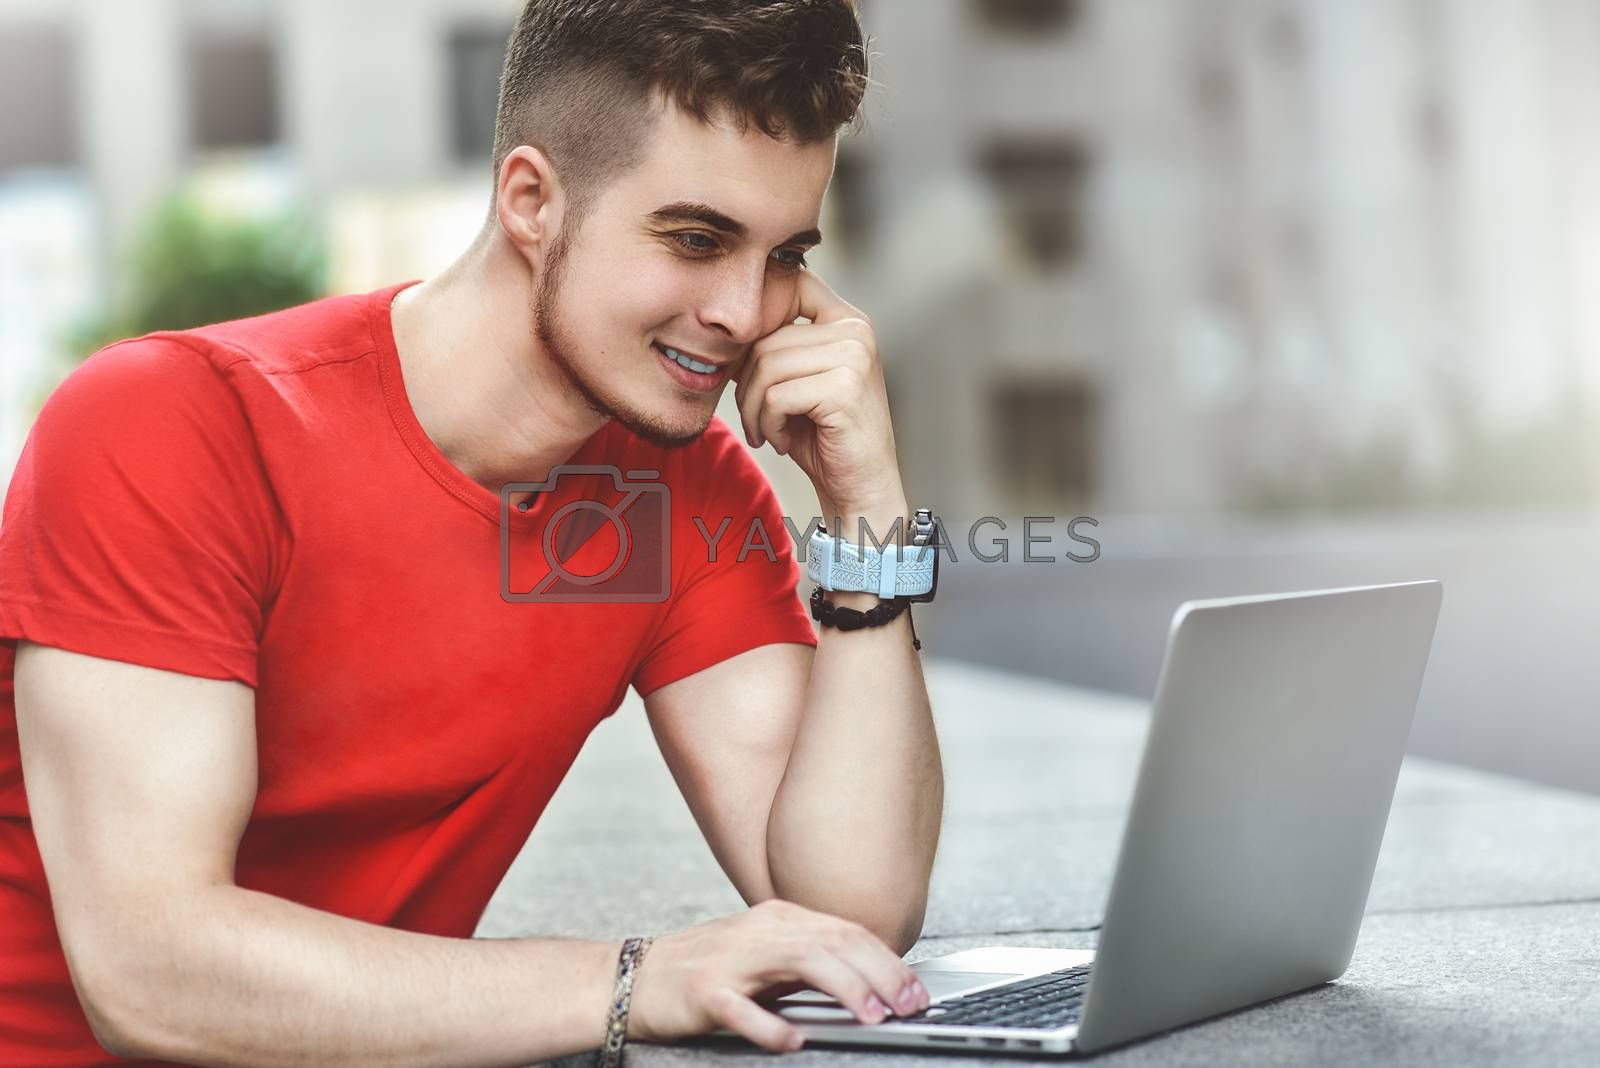 Young attractive guy who is smiling looking at his laptop screen . Young man using laptop.